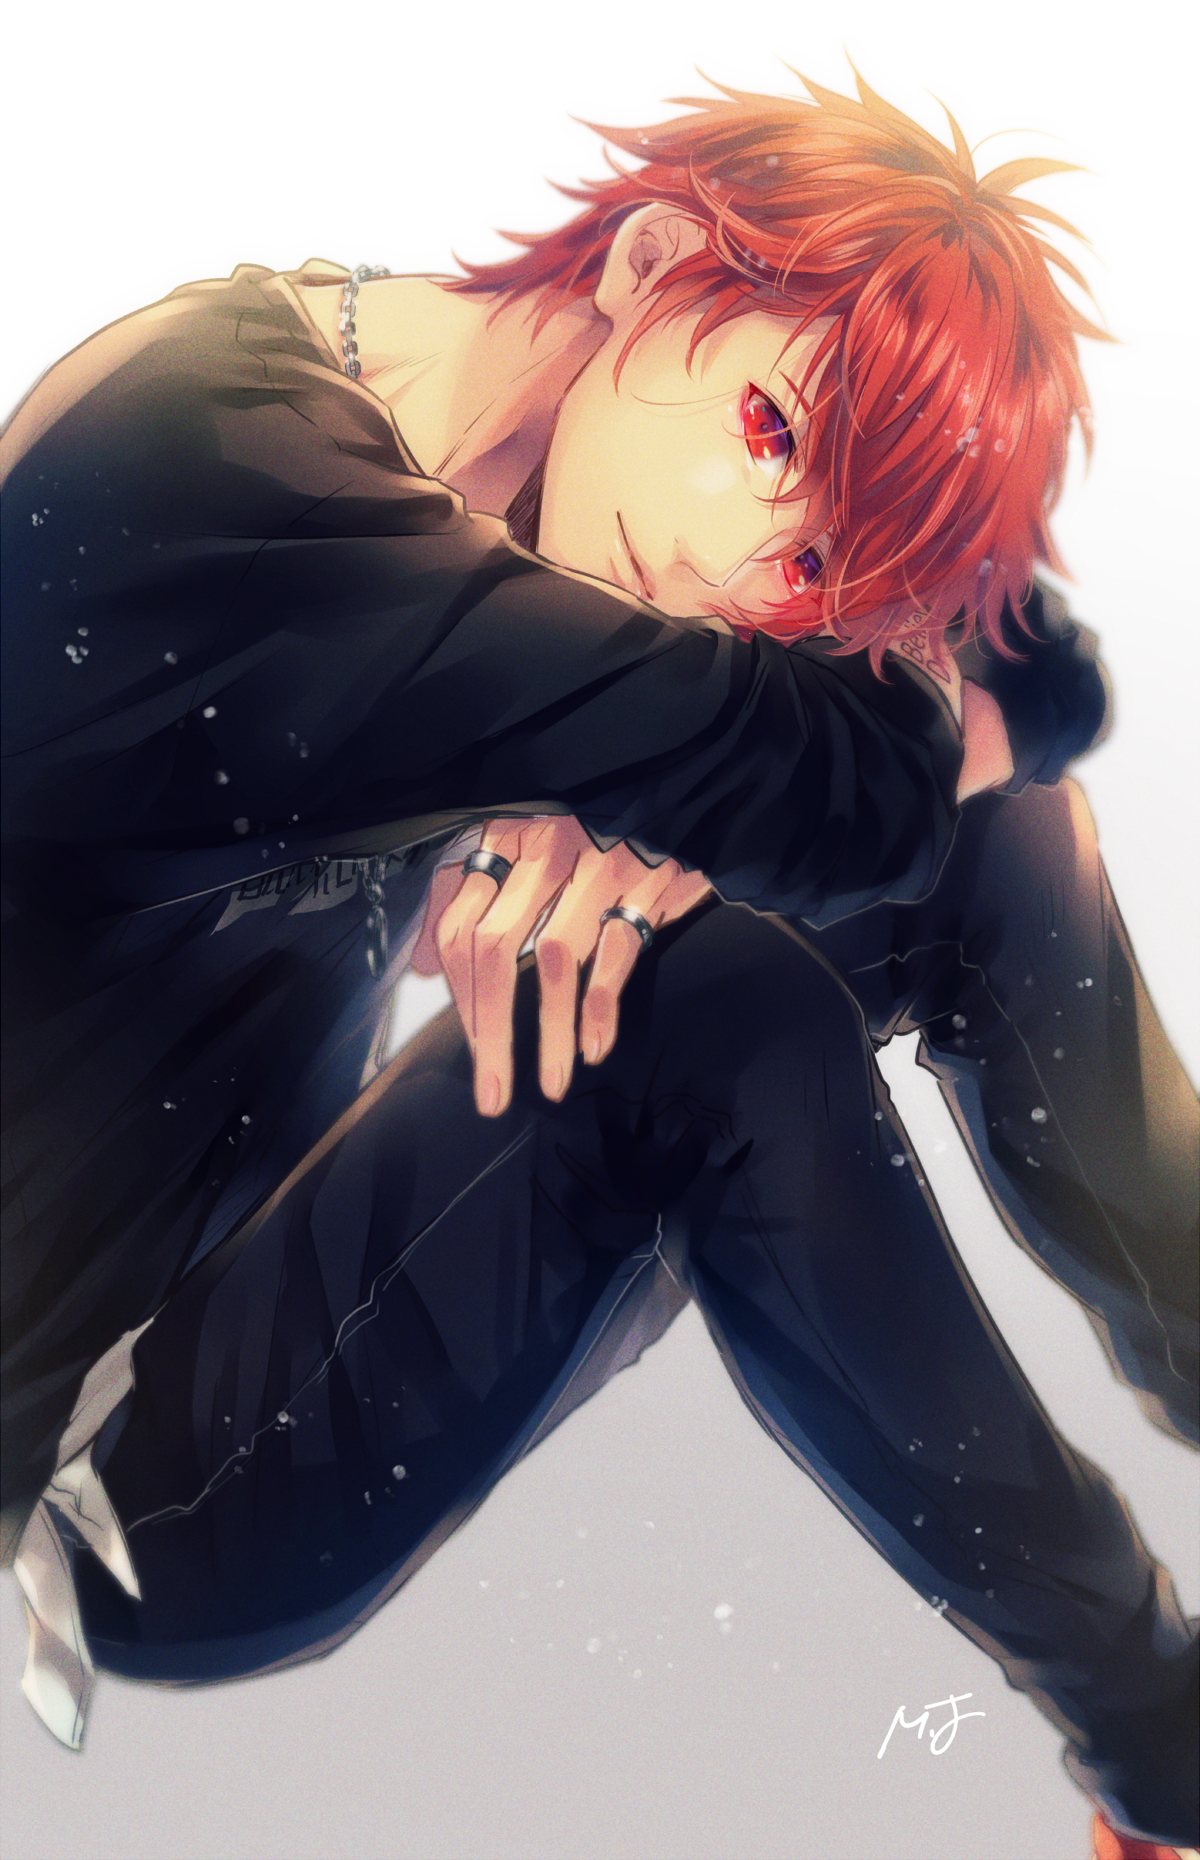 Cute Anime Boy With Red Hair : anime, 今井, Twitter, Anime, Characters,, Hair,